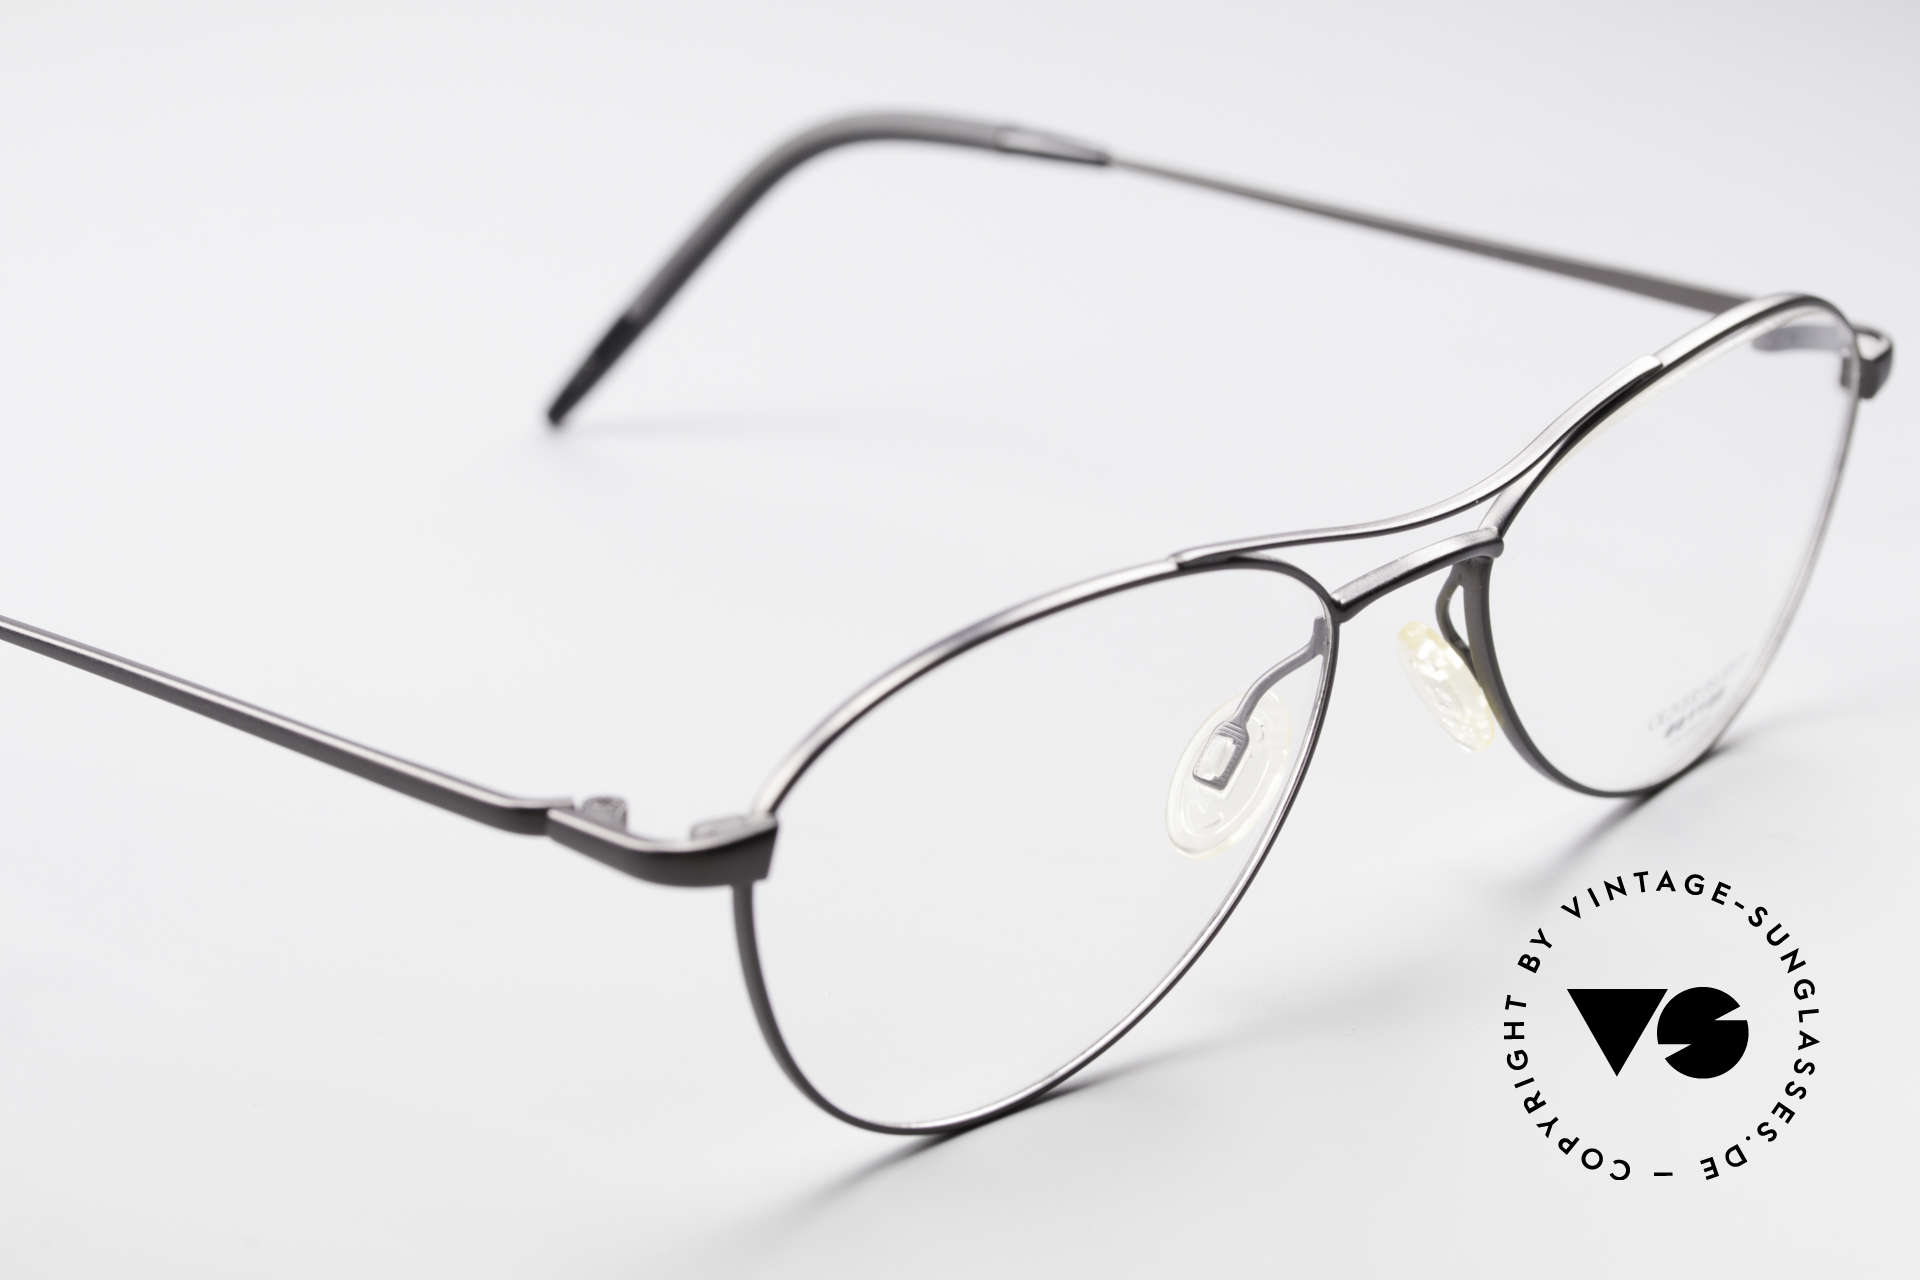 Oliver Peoples Aero Extraordinary Aviator Glasses, unworn rarity (like all our vintage O. Peoples glasses), Made for Men